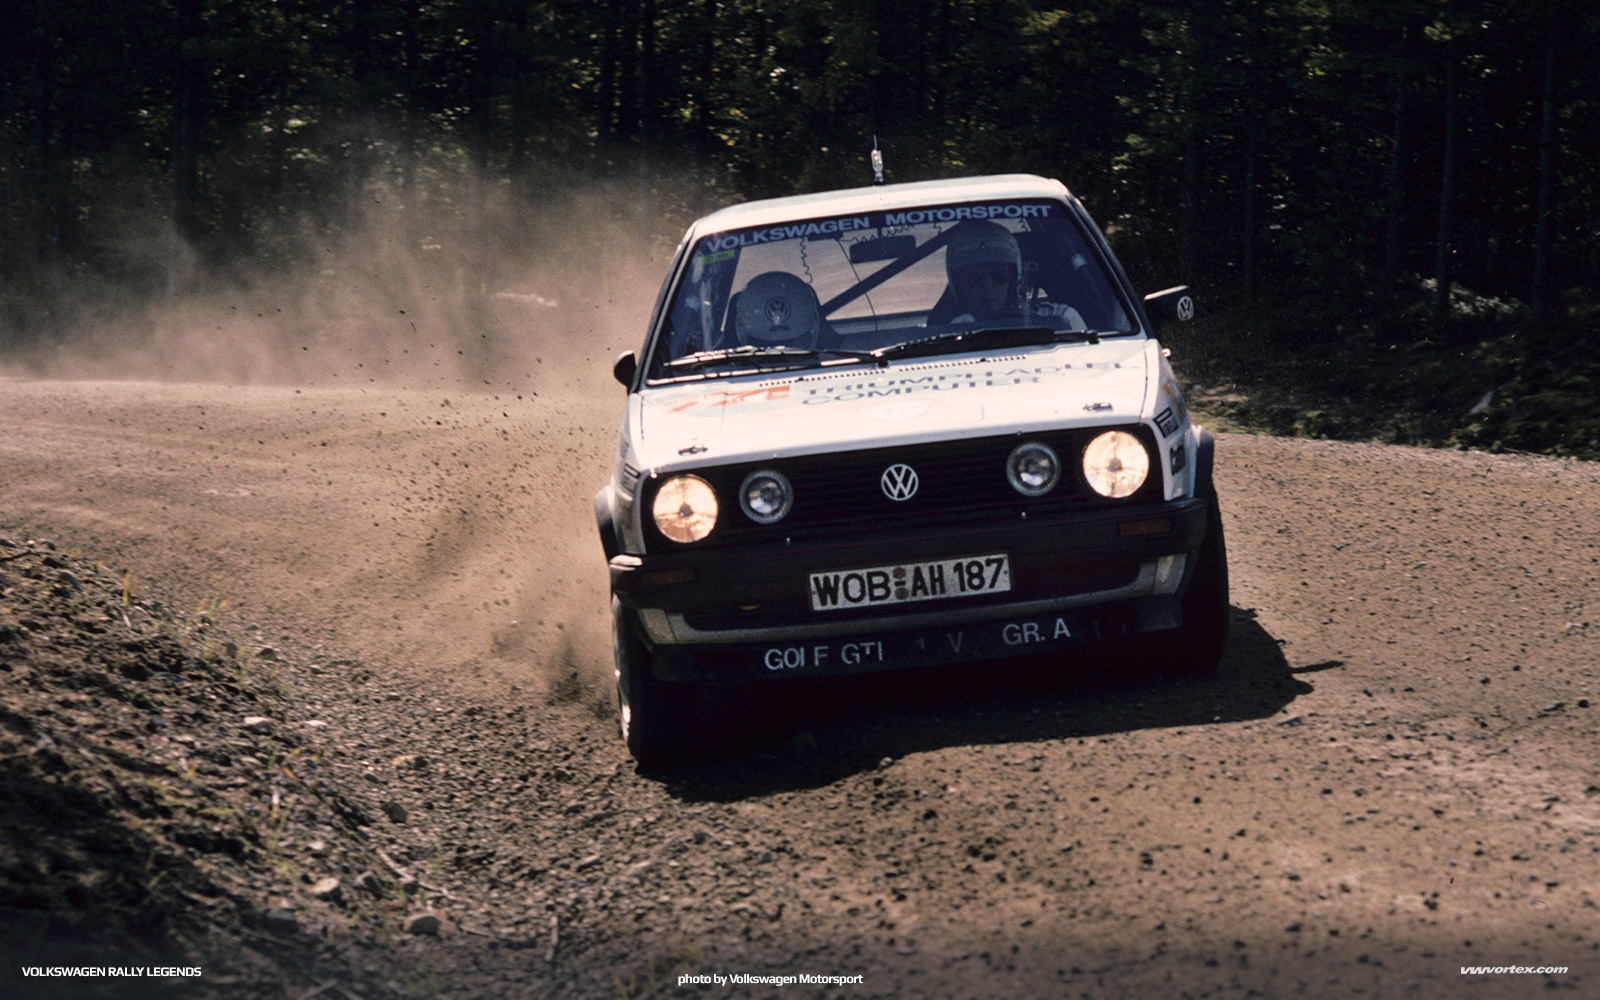 volkswagen-rally-legends-384